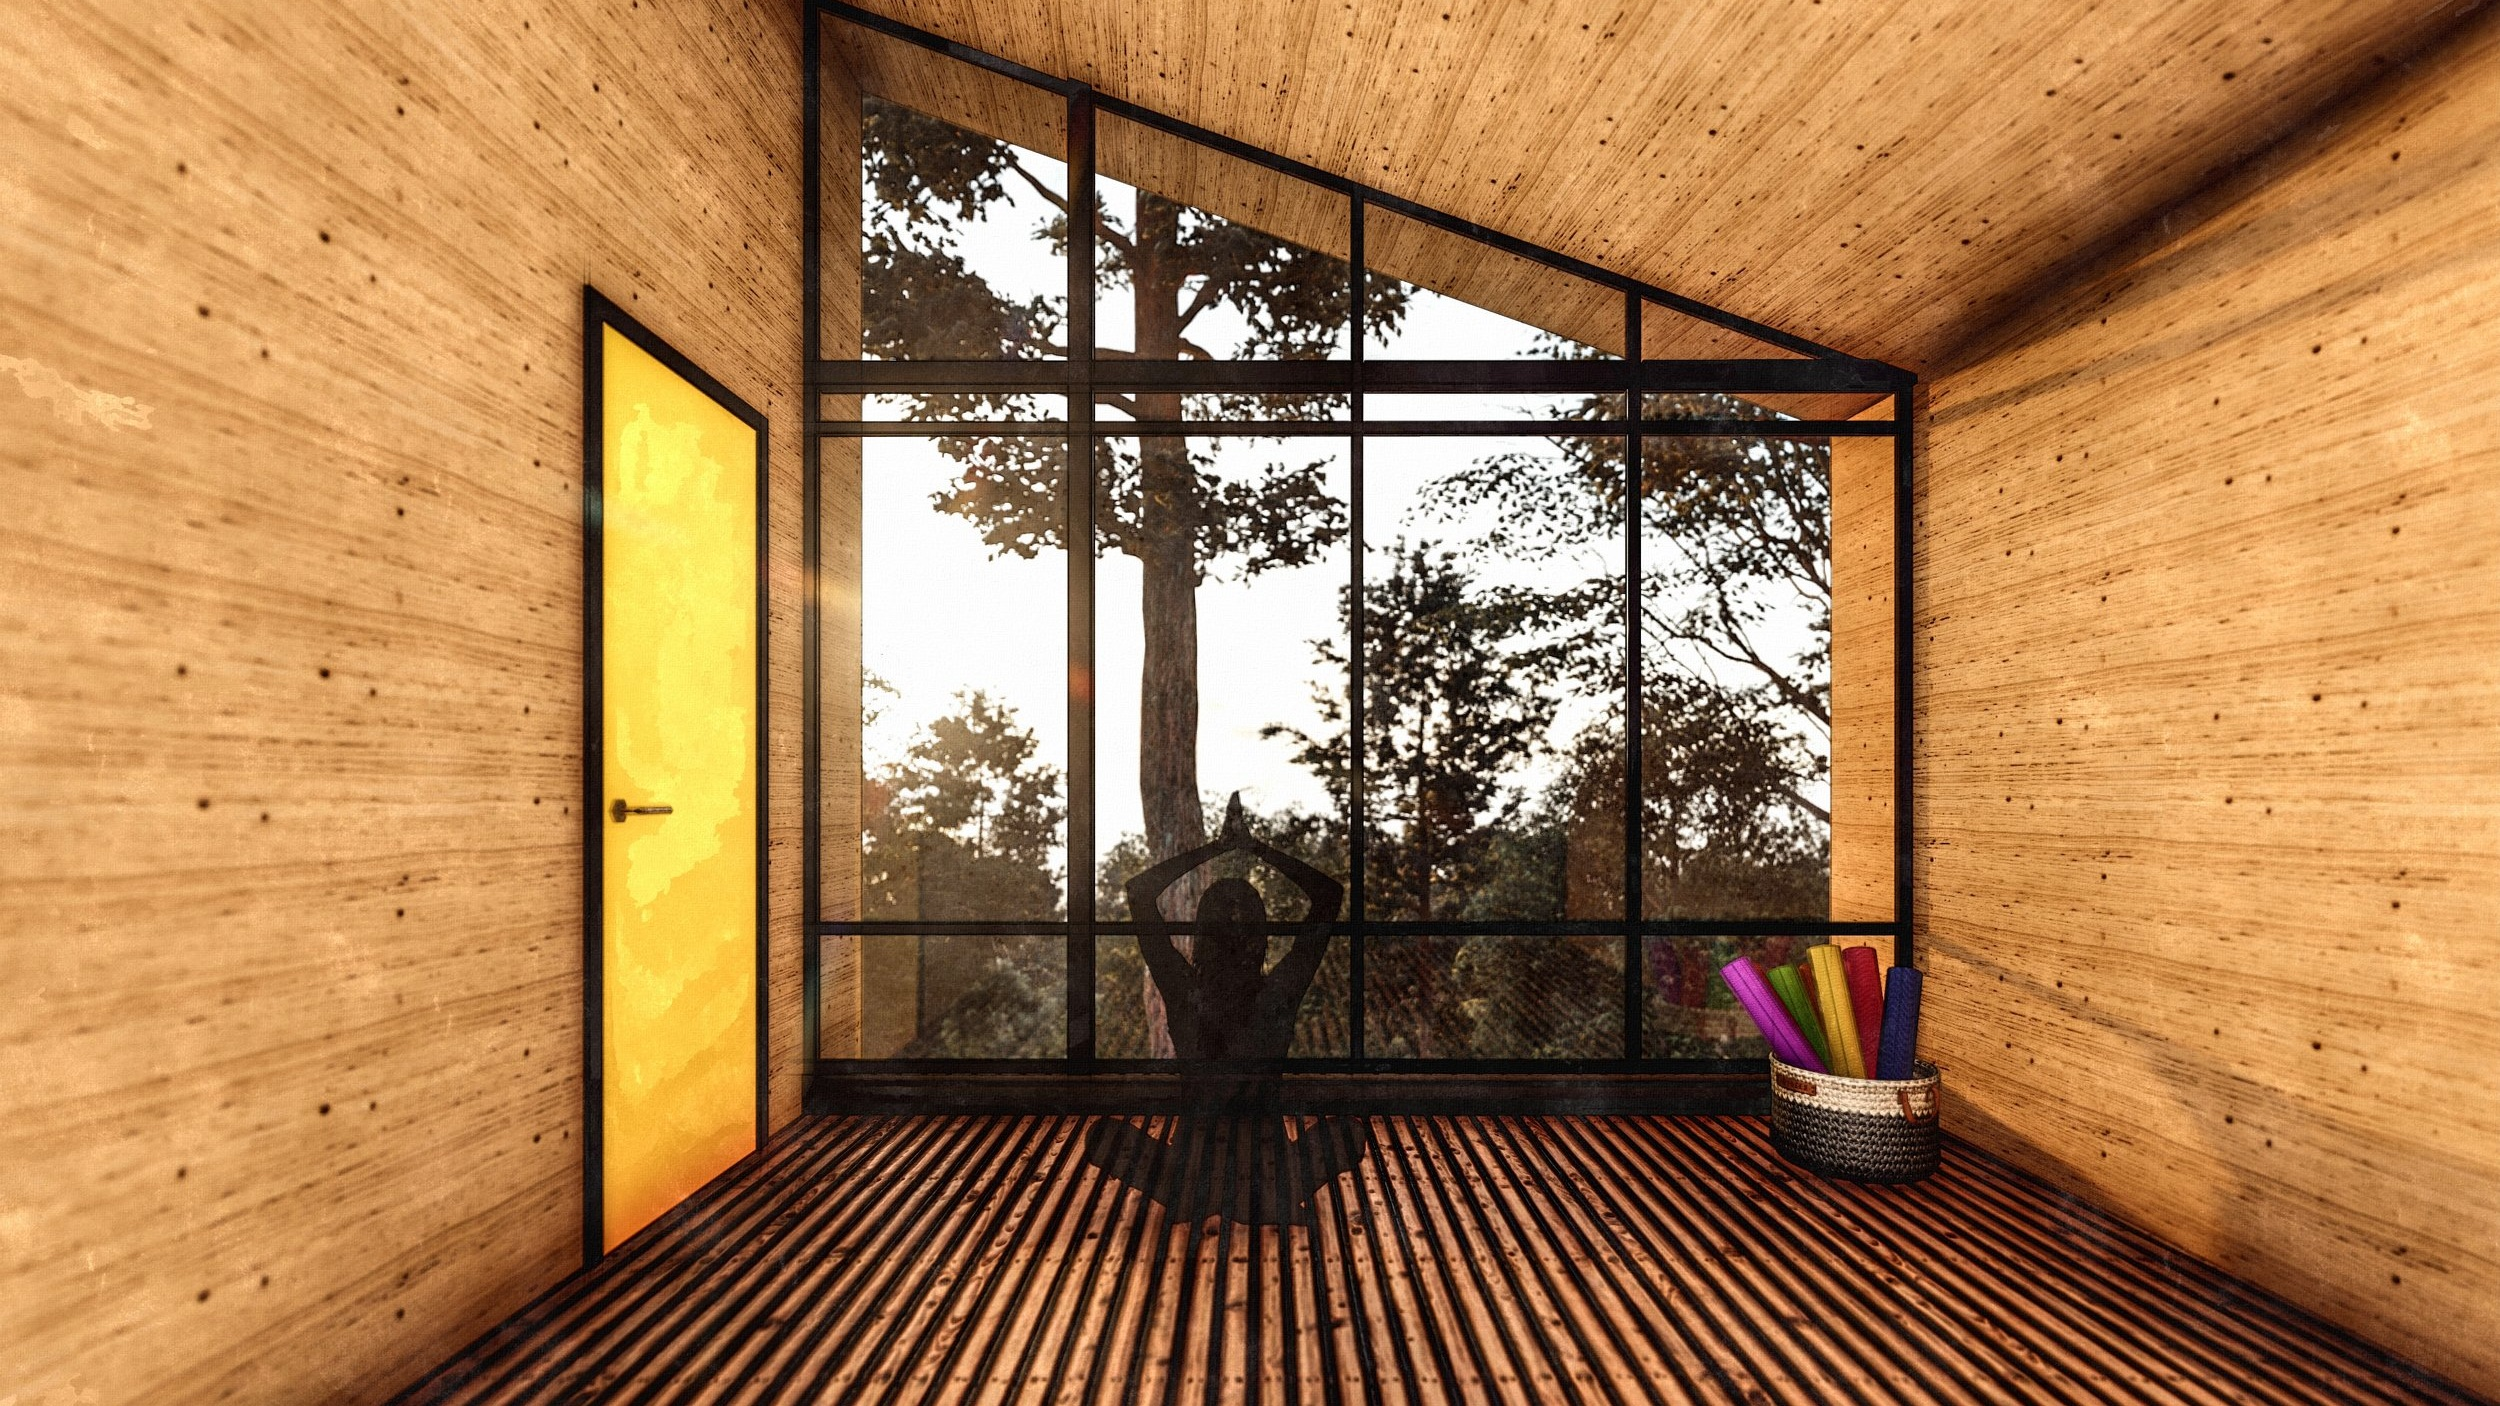 Stilted Rooms - Concept_Yoga Room_Edit_FotoSketcher.jpg